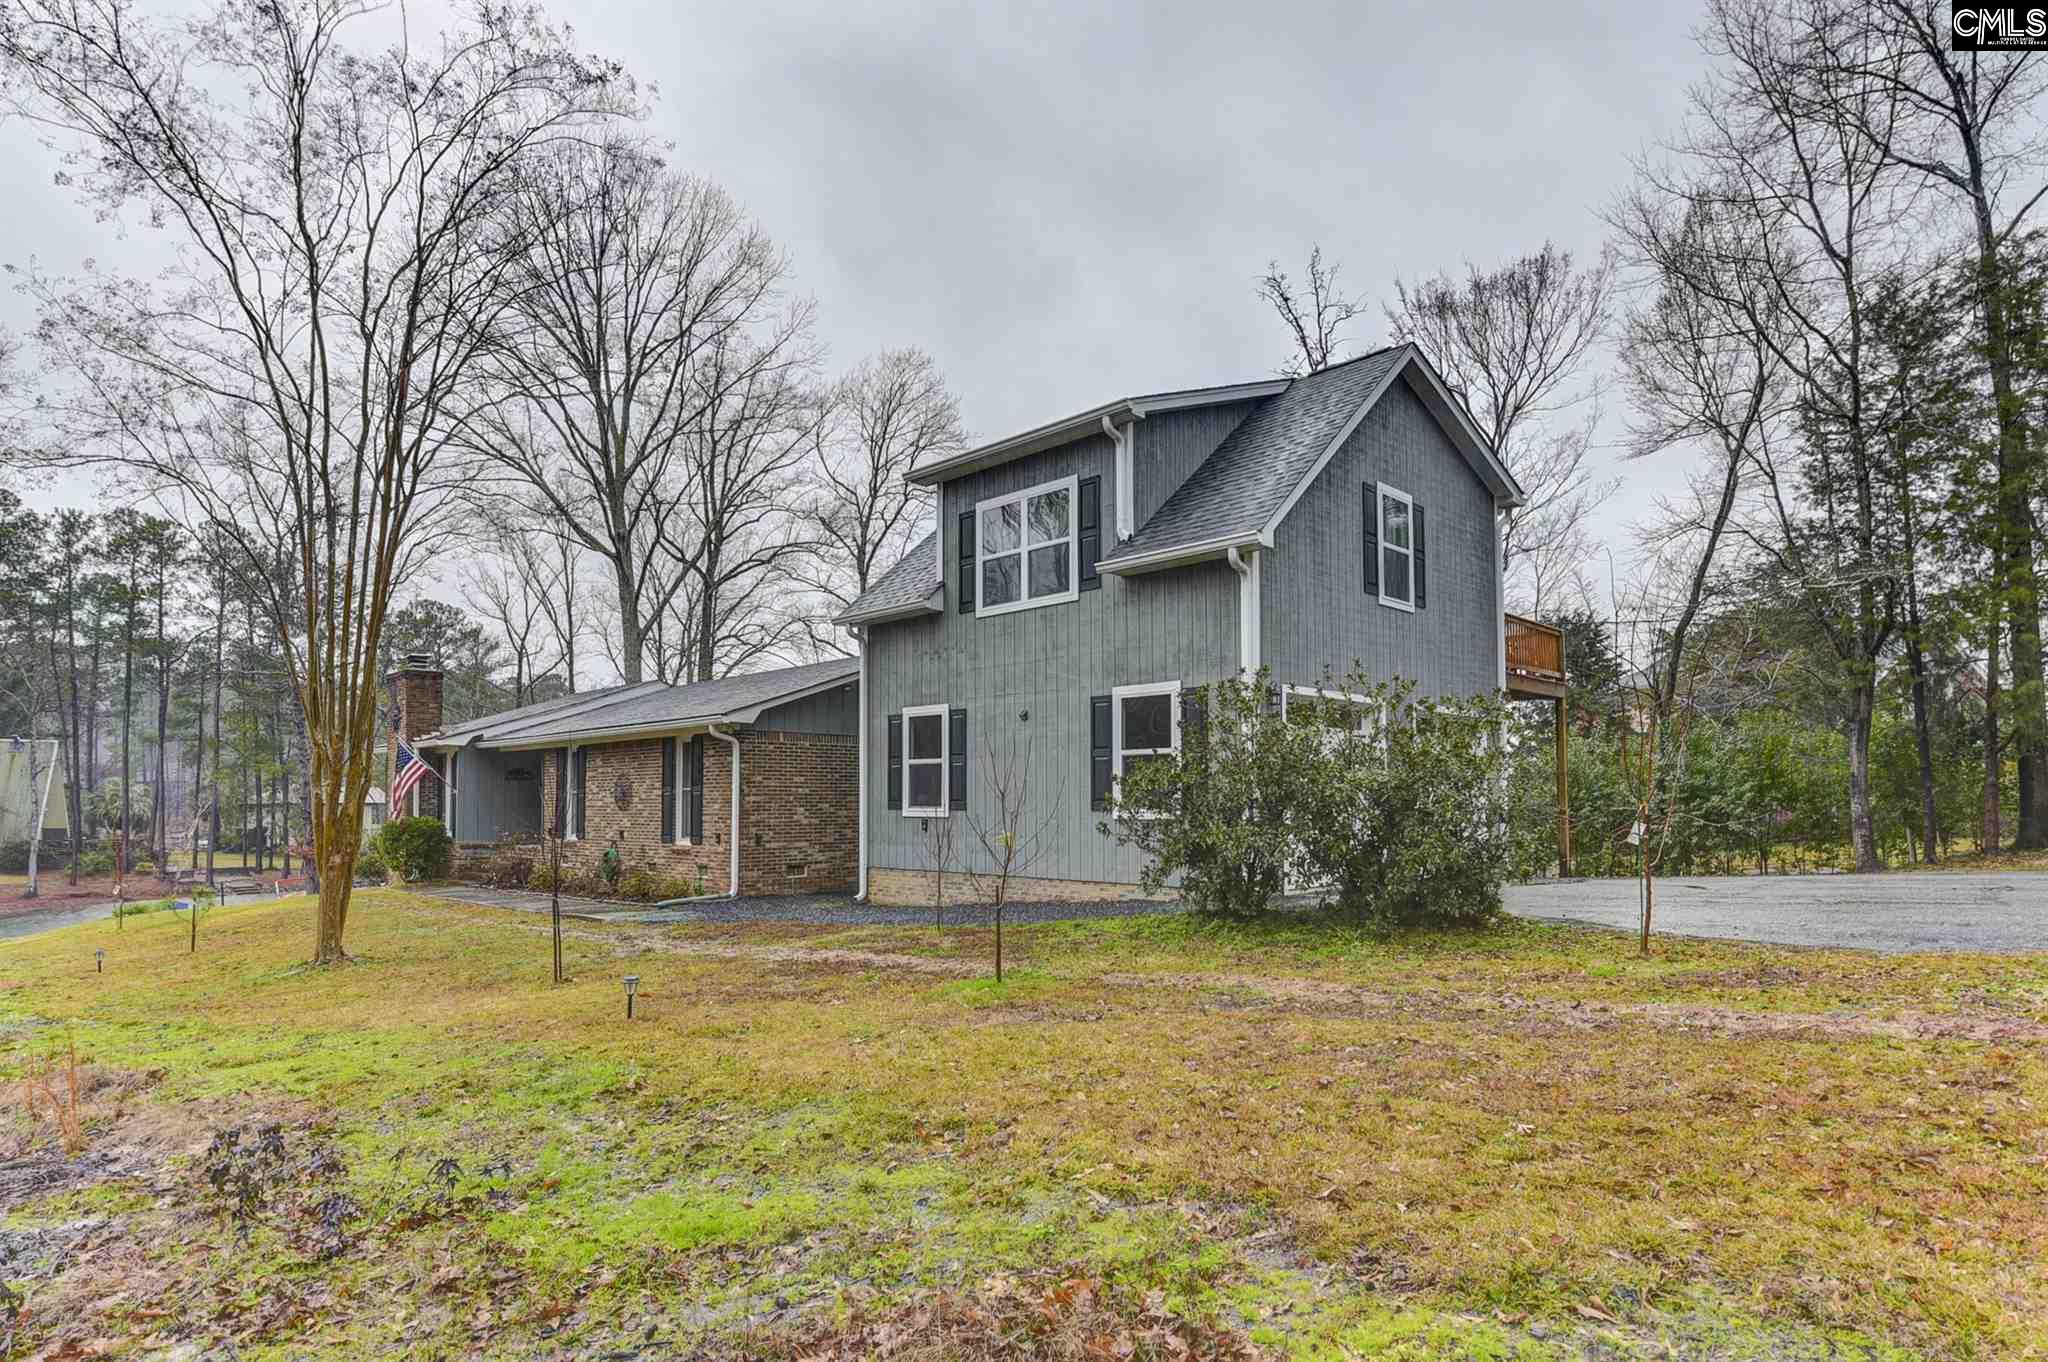 141 Beechcreek Lexington, SC 29072